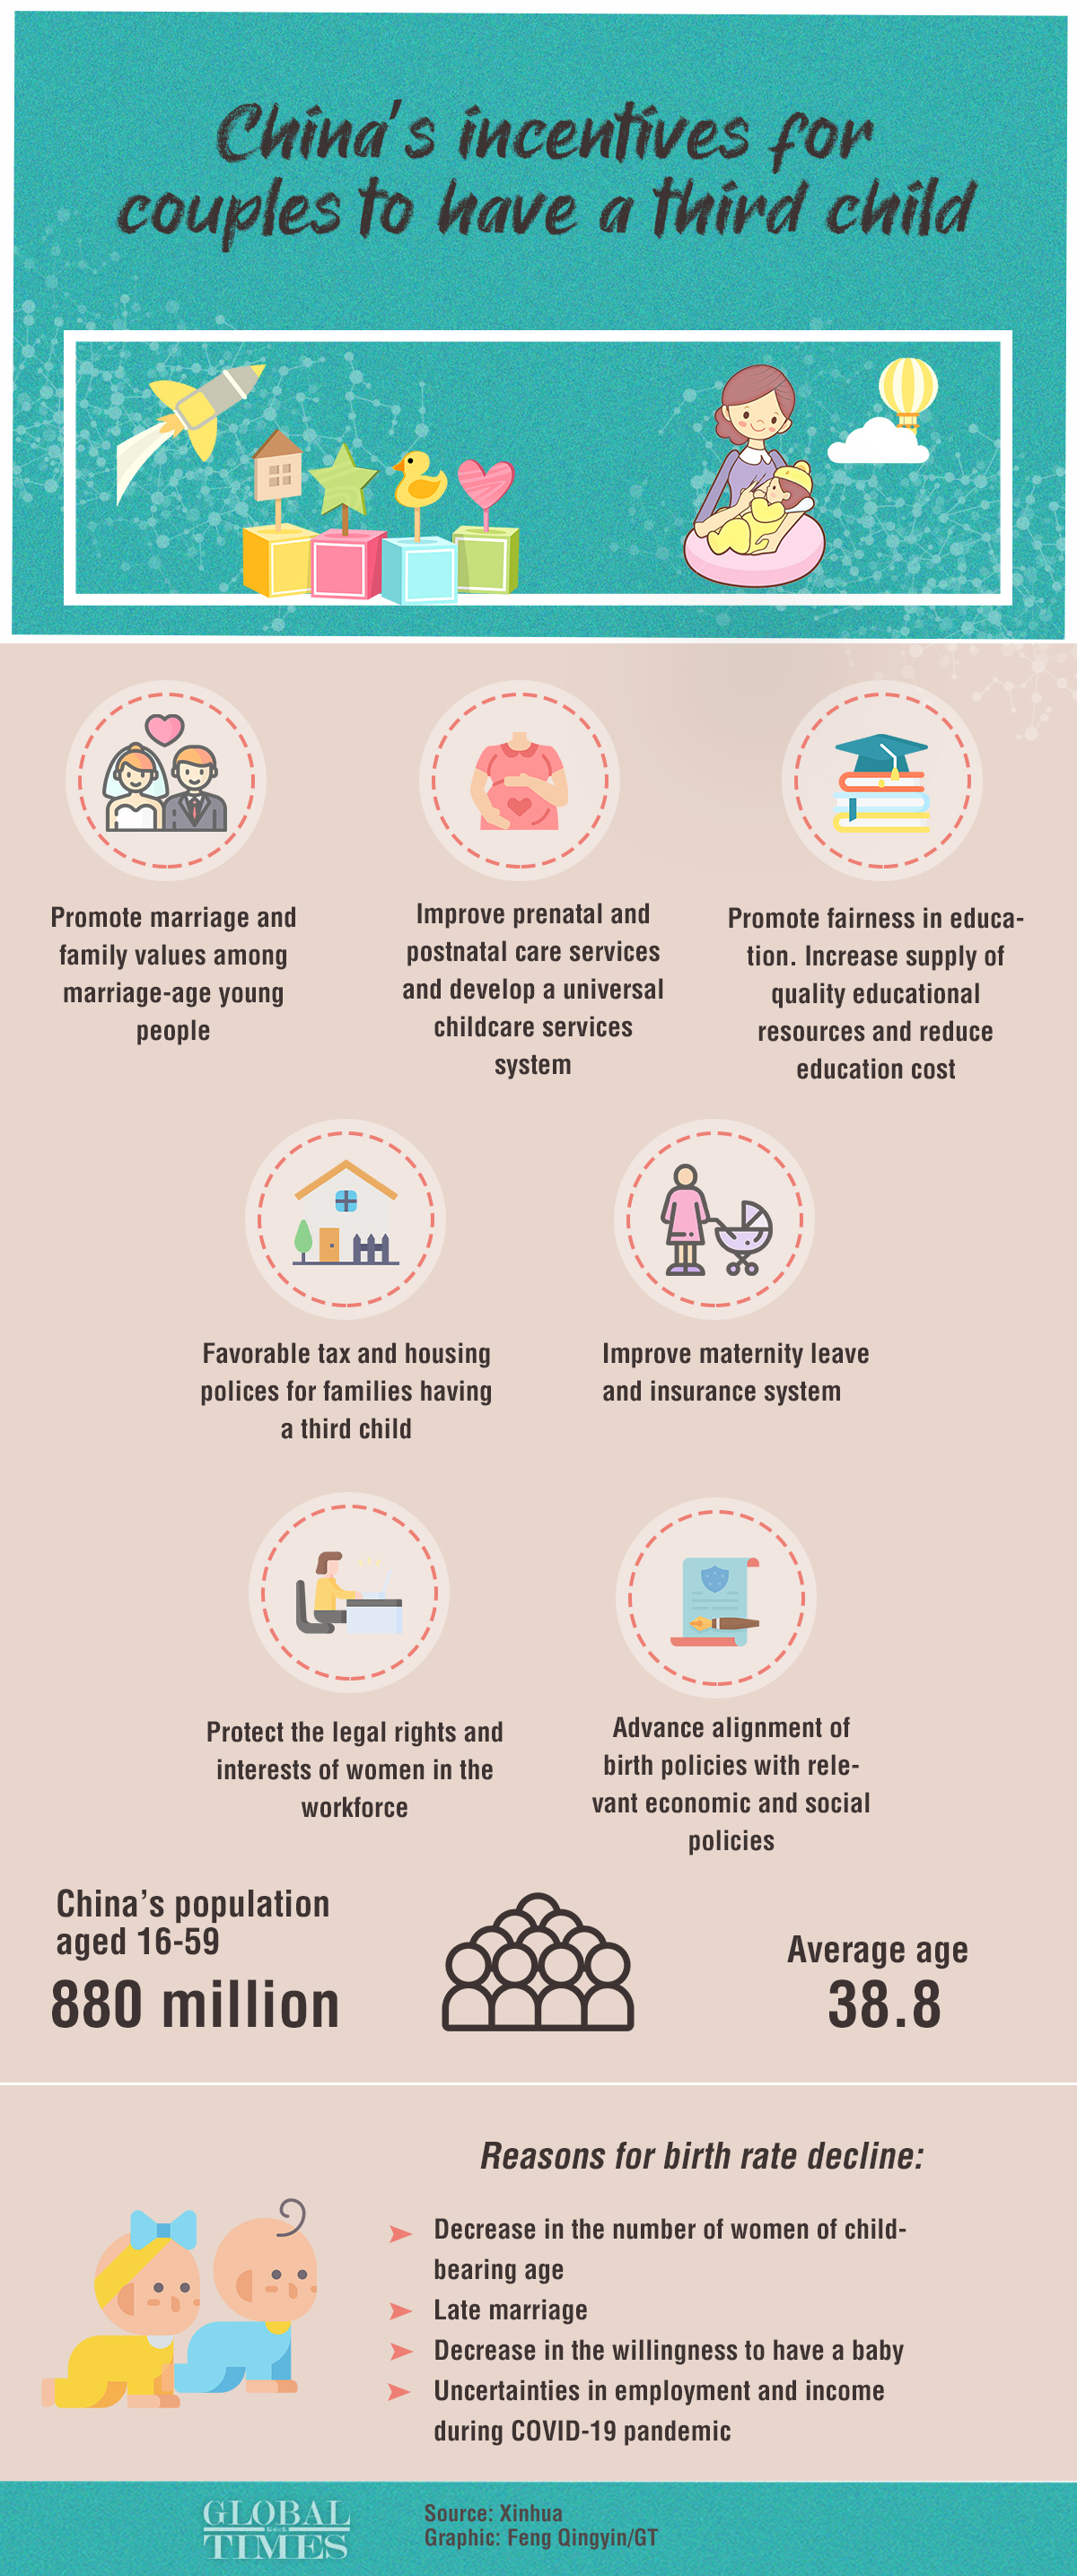 China on Monday announced it was adjusting its family planning policy to allow each couple to have up to three children, a major shift from the current two-child policy. What incentives will China give for couples to have a third child? Graphic: Feng Qingyin/GT